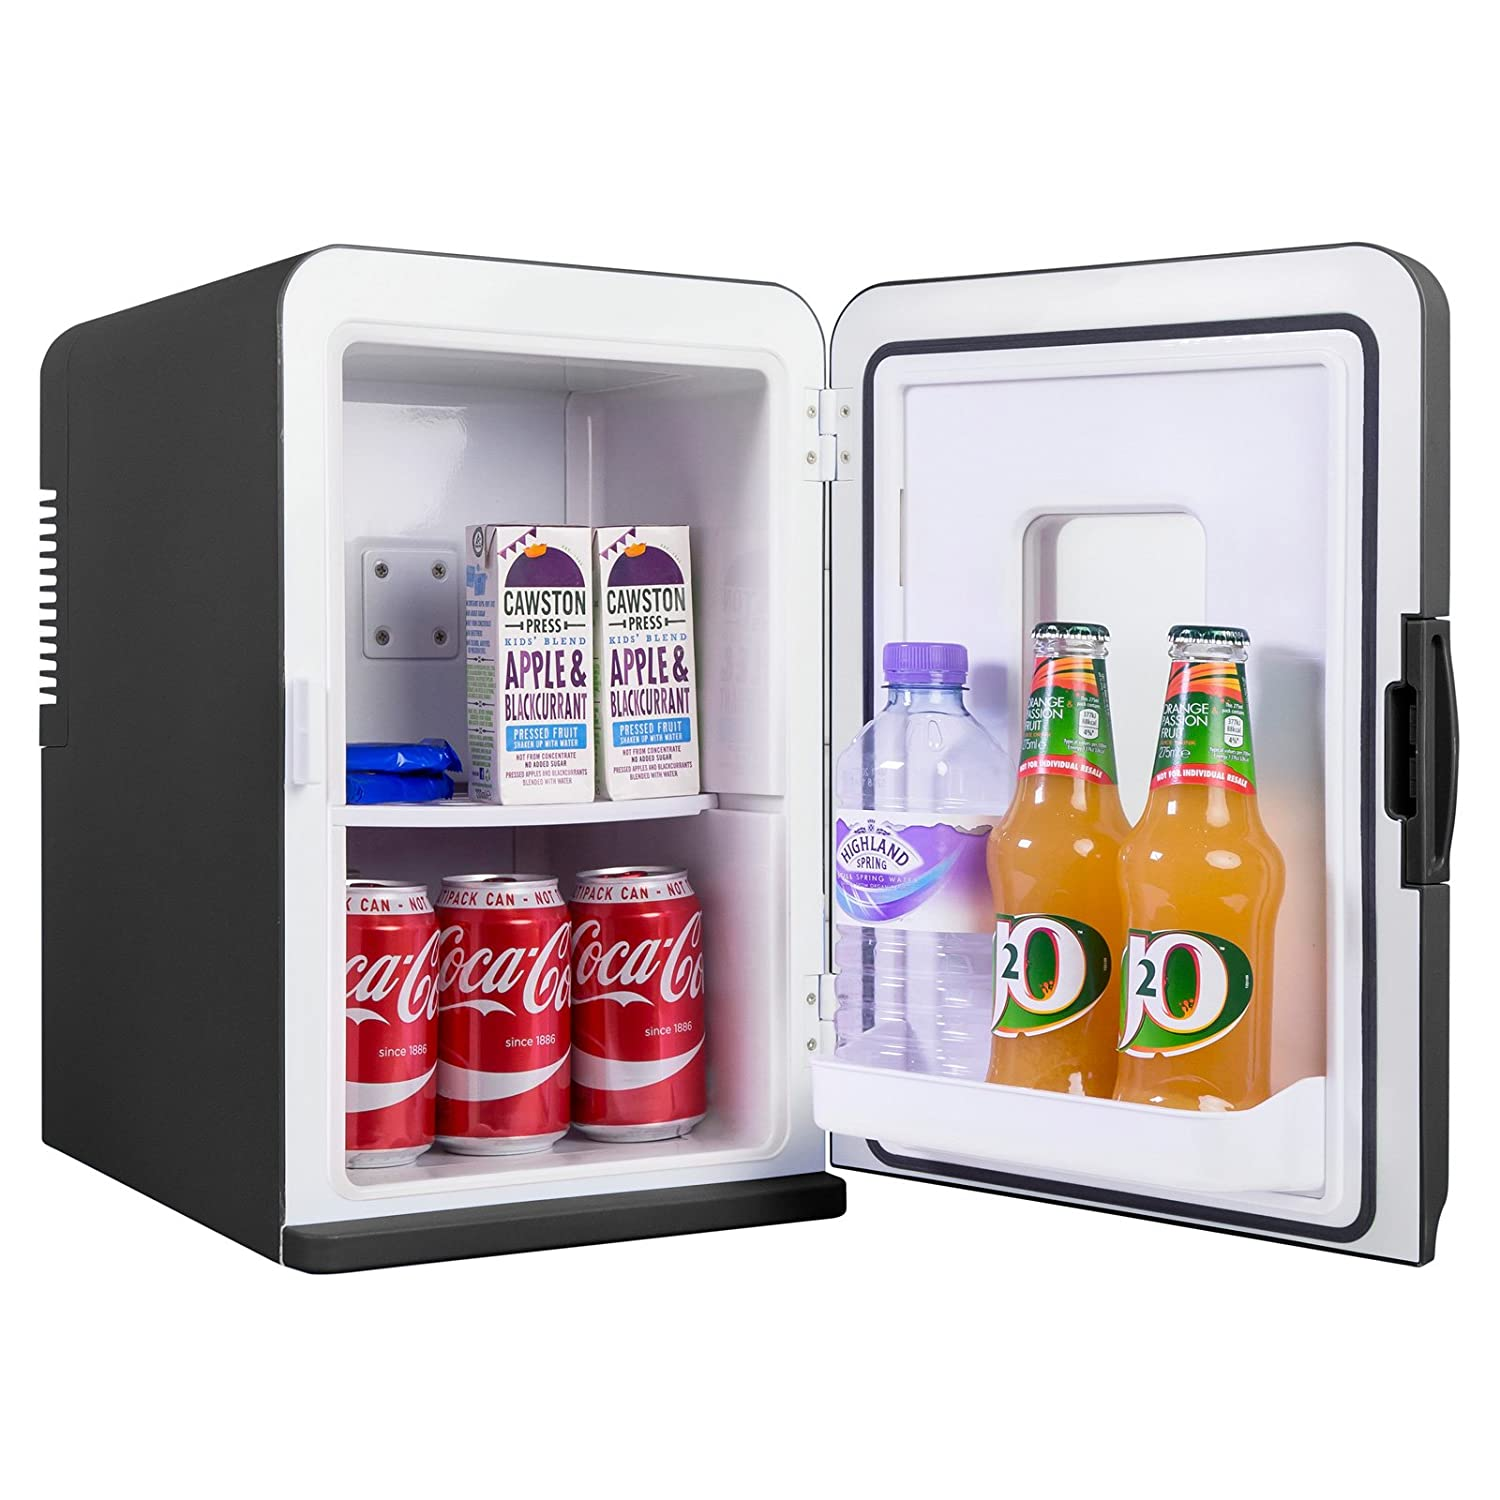 iceQ 15 Litre Deluxe Portable Mini Fridge With Window - Black iceQ15blkw